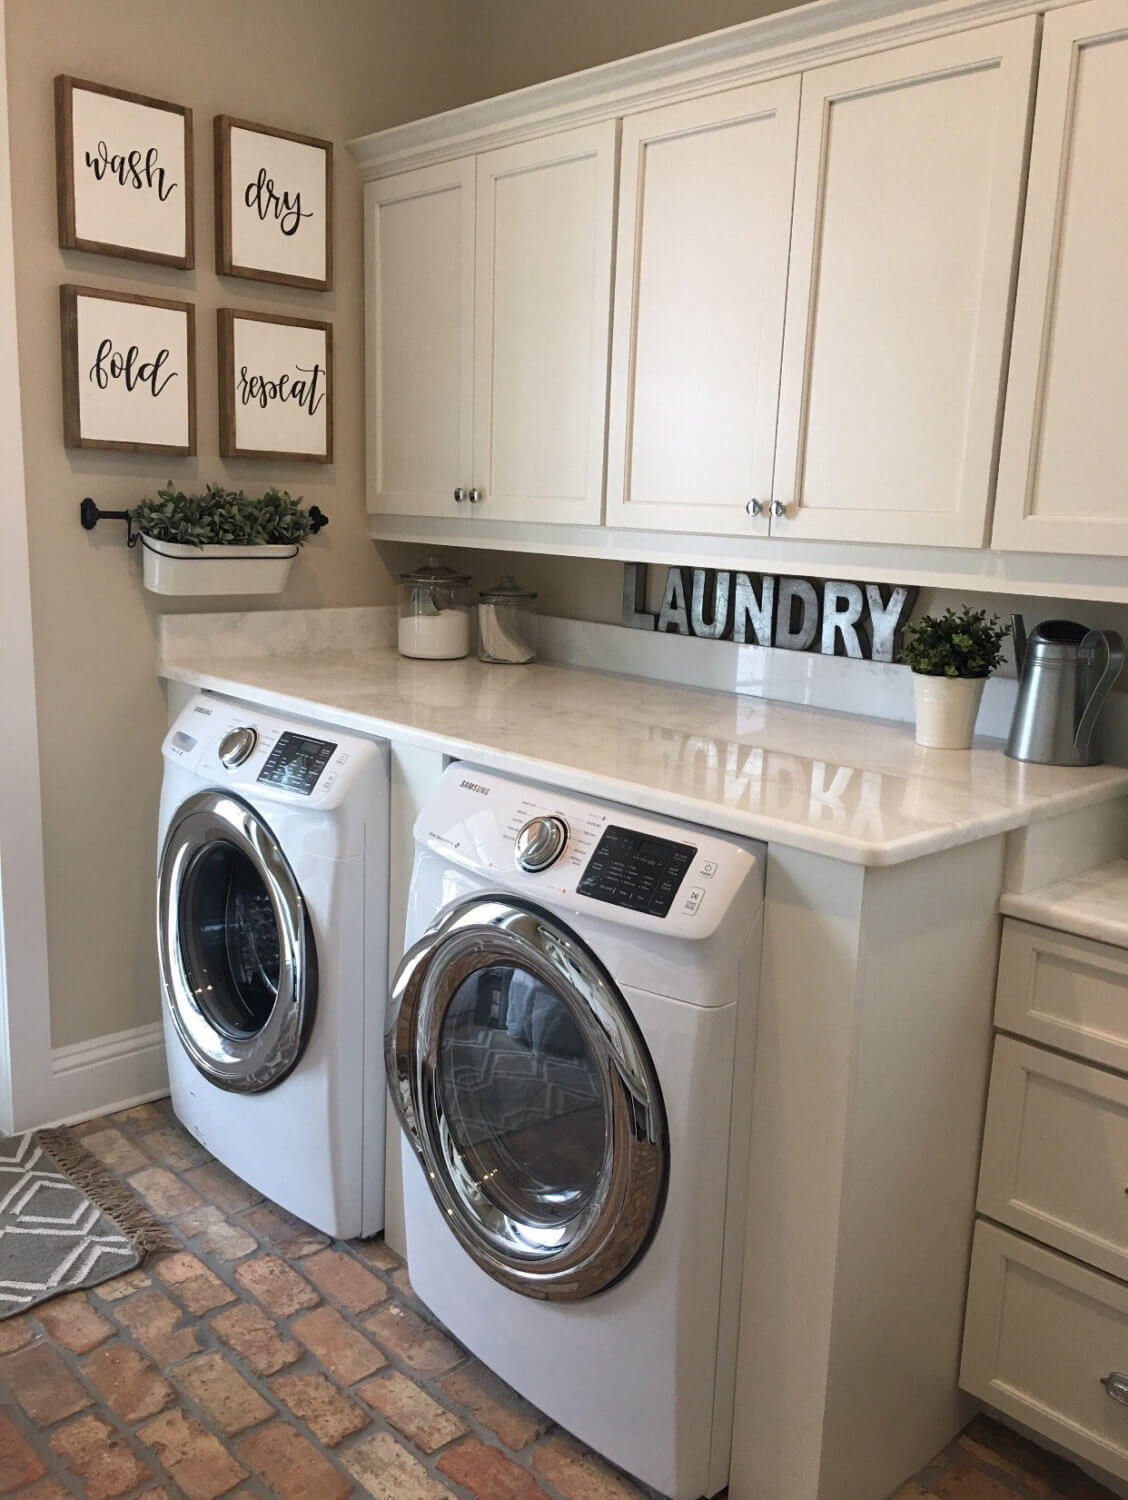 60 Best Farmhouse Laundry Room Decor Ideas and Designs for ... on Laundry Room Decor  id=28660